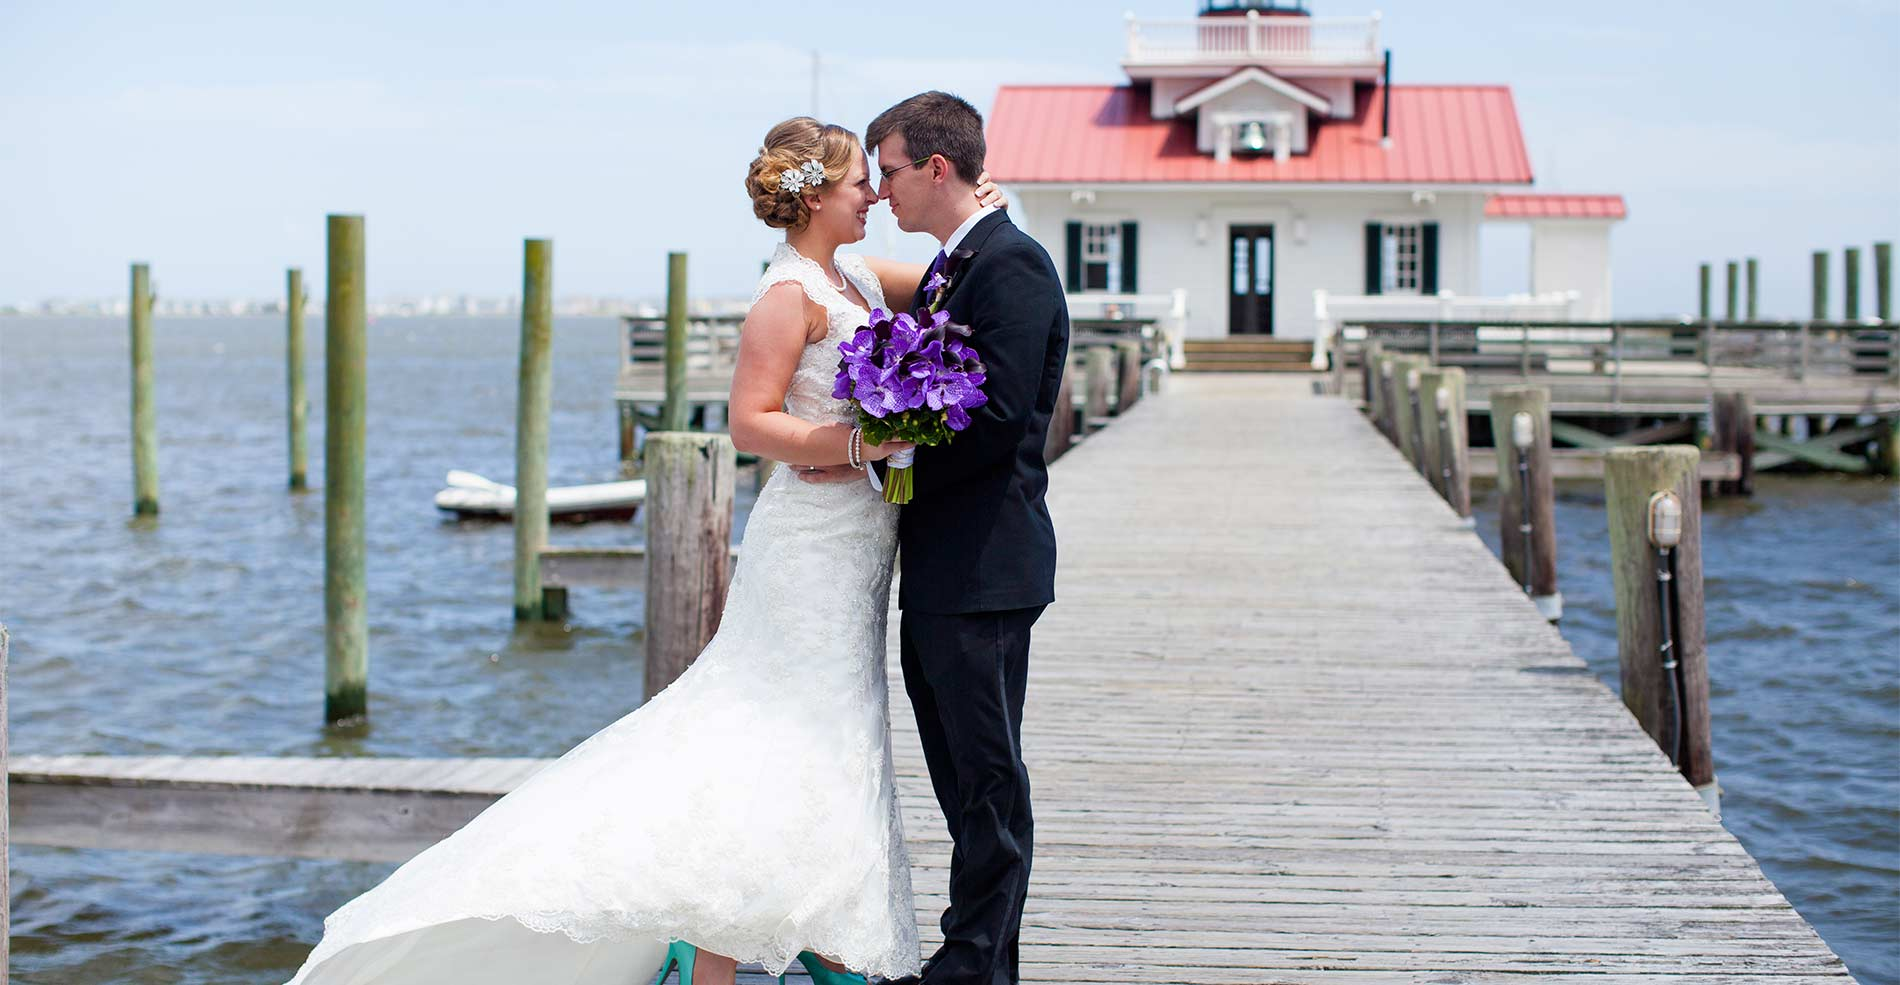 Wedding couple standing on pier with purple floral bouquet in hand between the, a red building marks the background